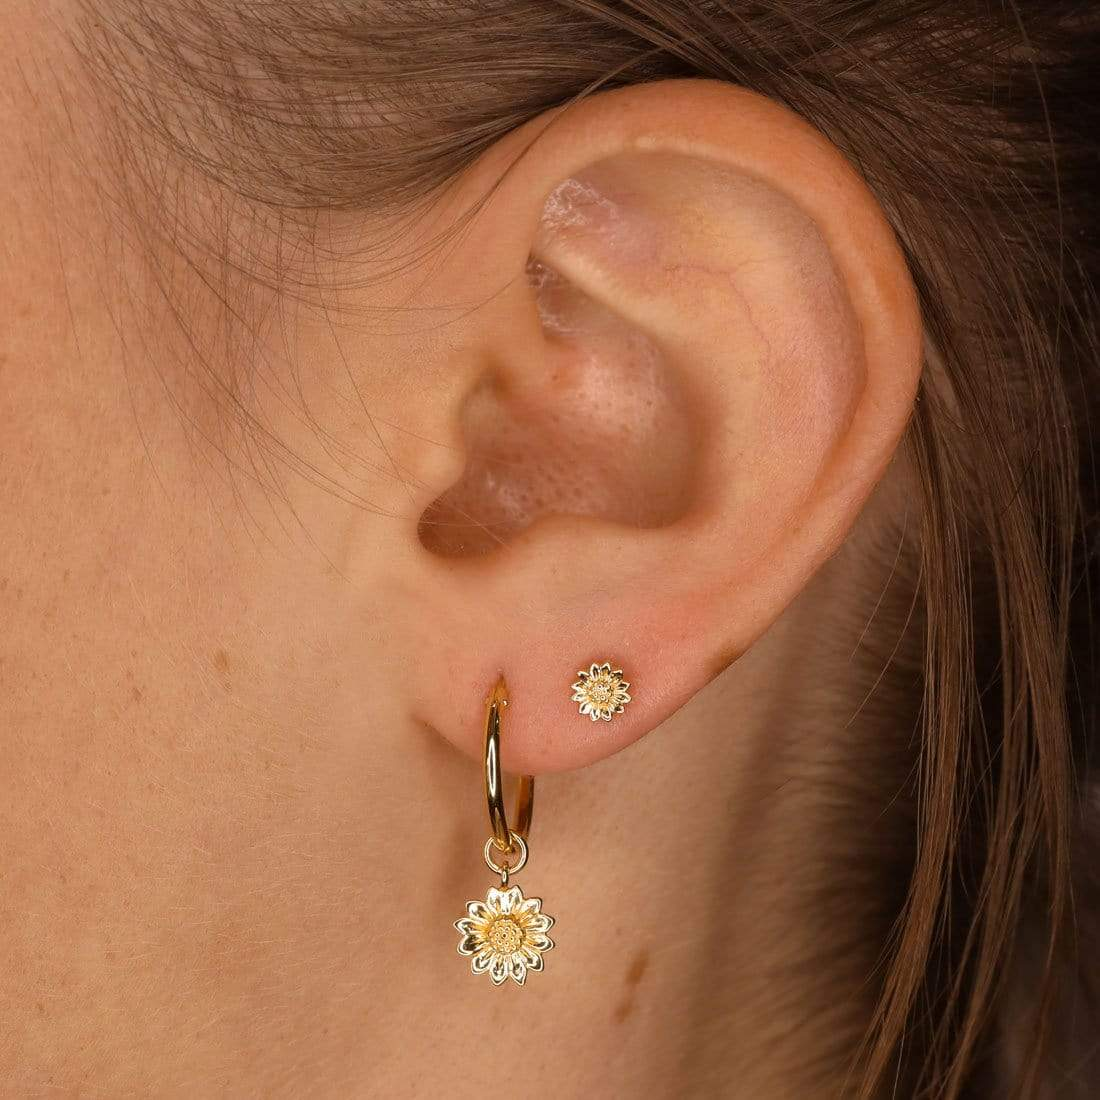 Midsummer Star Earrings Gold Tiny Sunflower Studs